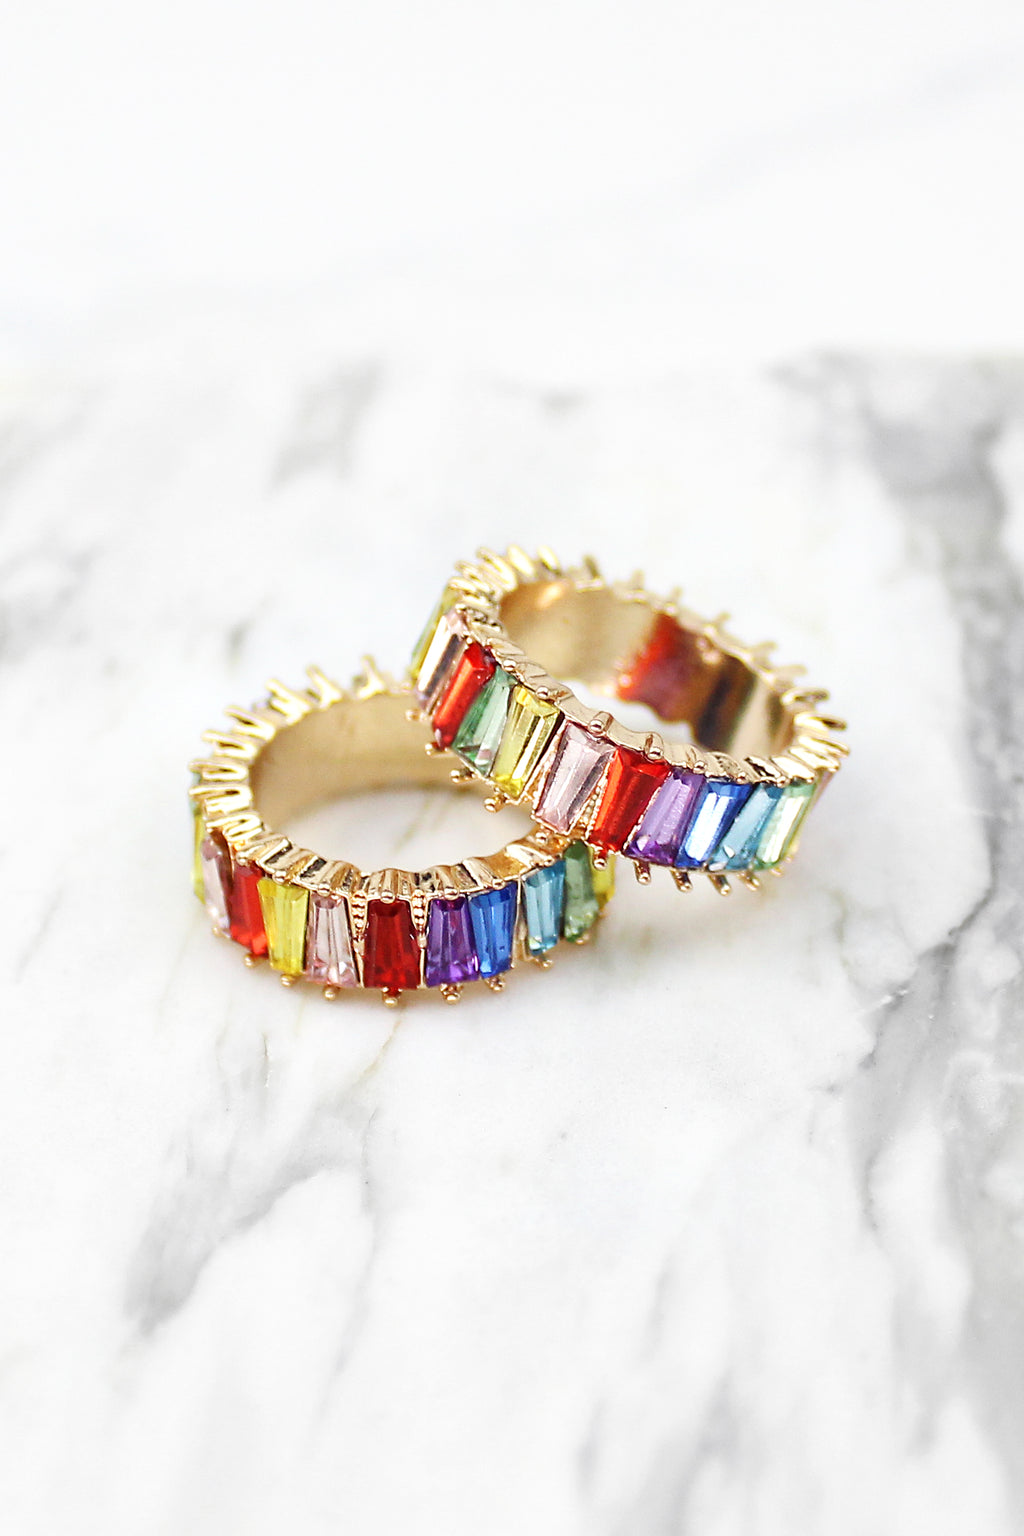 Thick Freeform Rainbow Baguette Ring - Multicolor, Rainbow Ring, Baguette Ring, Multicolor Baguette Ring, Statement Ring, Gold Baguette Ring, Rainbow Baguette Ring, Eternity Baguette Ring - Kendry Collection Boutique